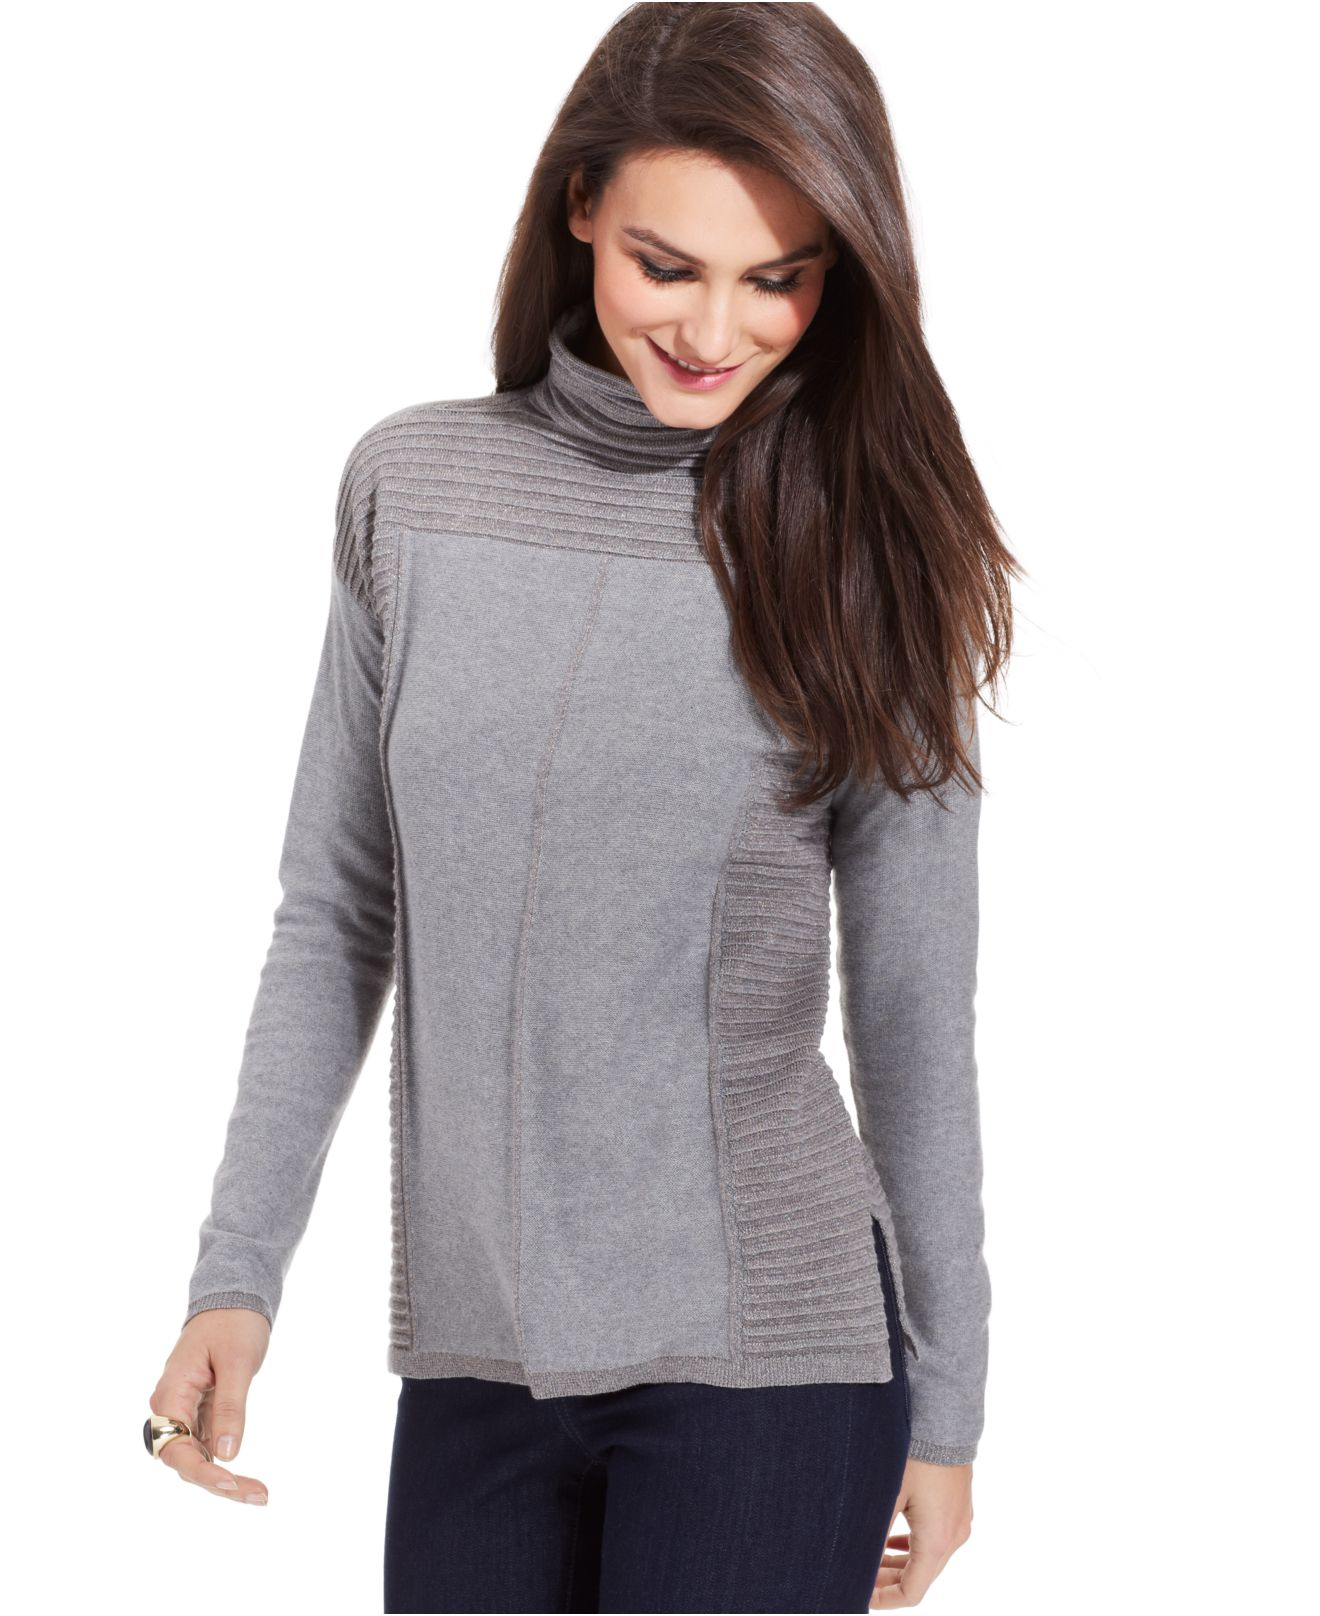 Lyst - Vince Ribbed Shawl Cardigan in Gray